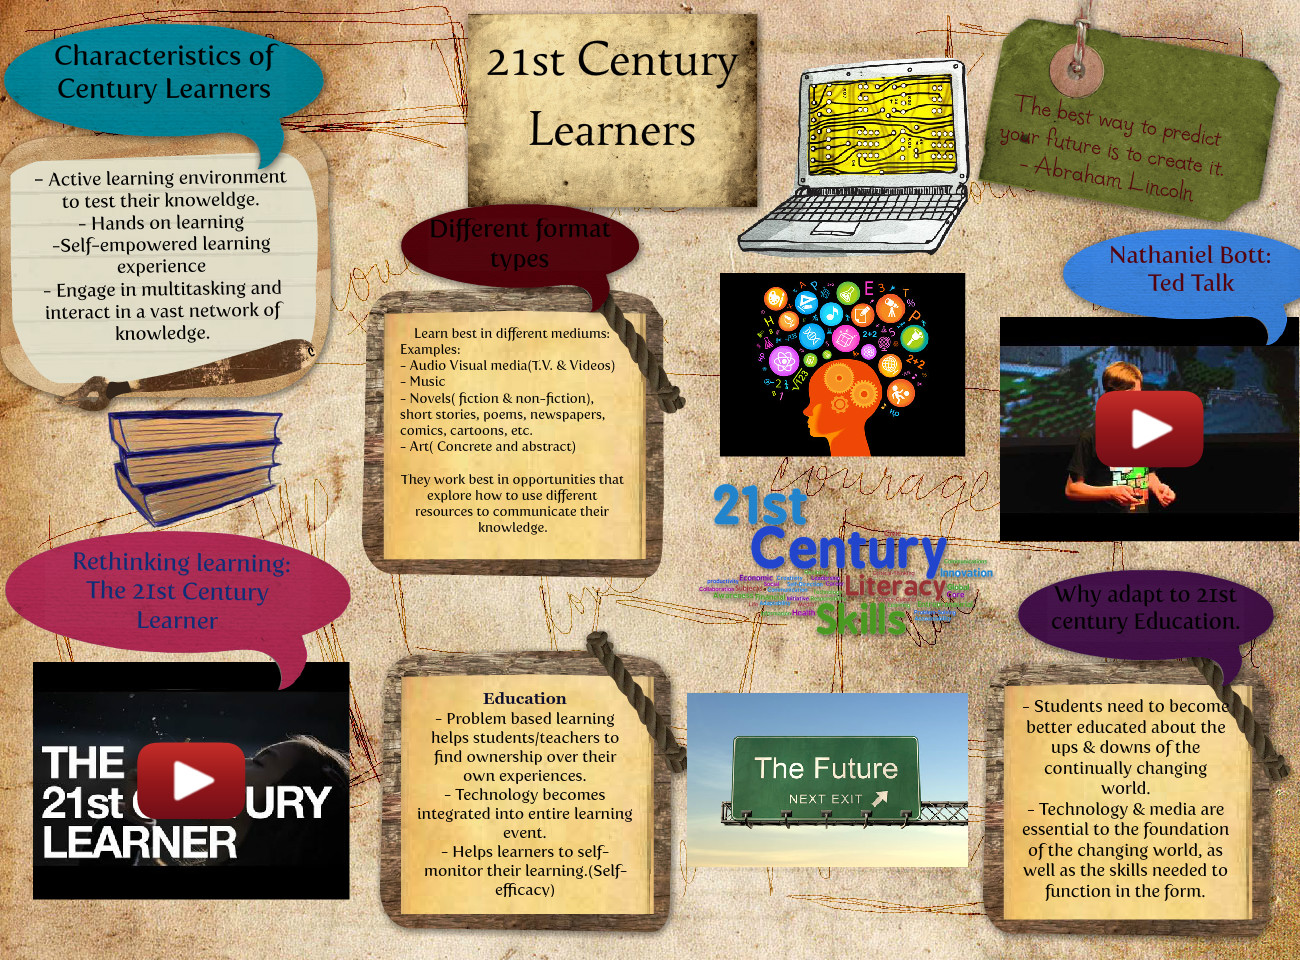 21st Century Learners